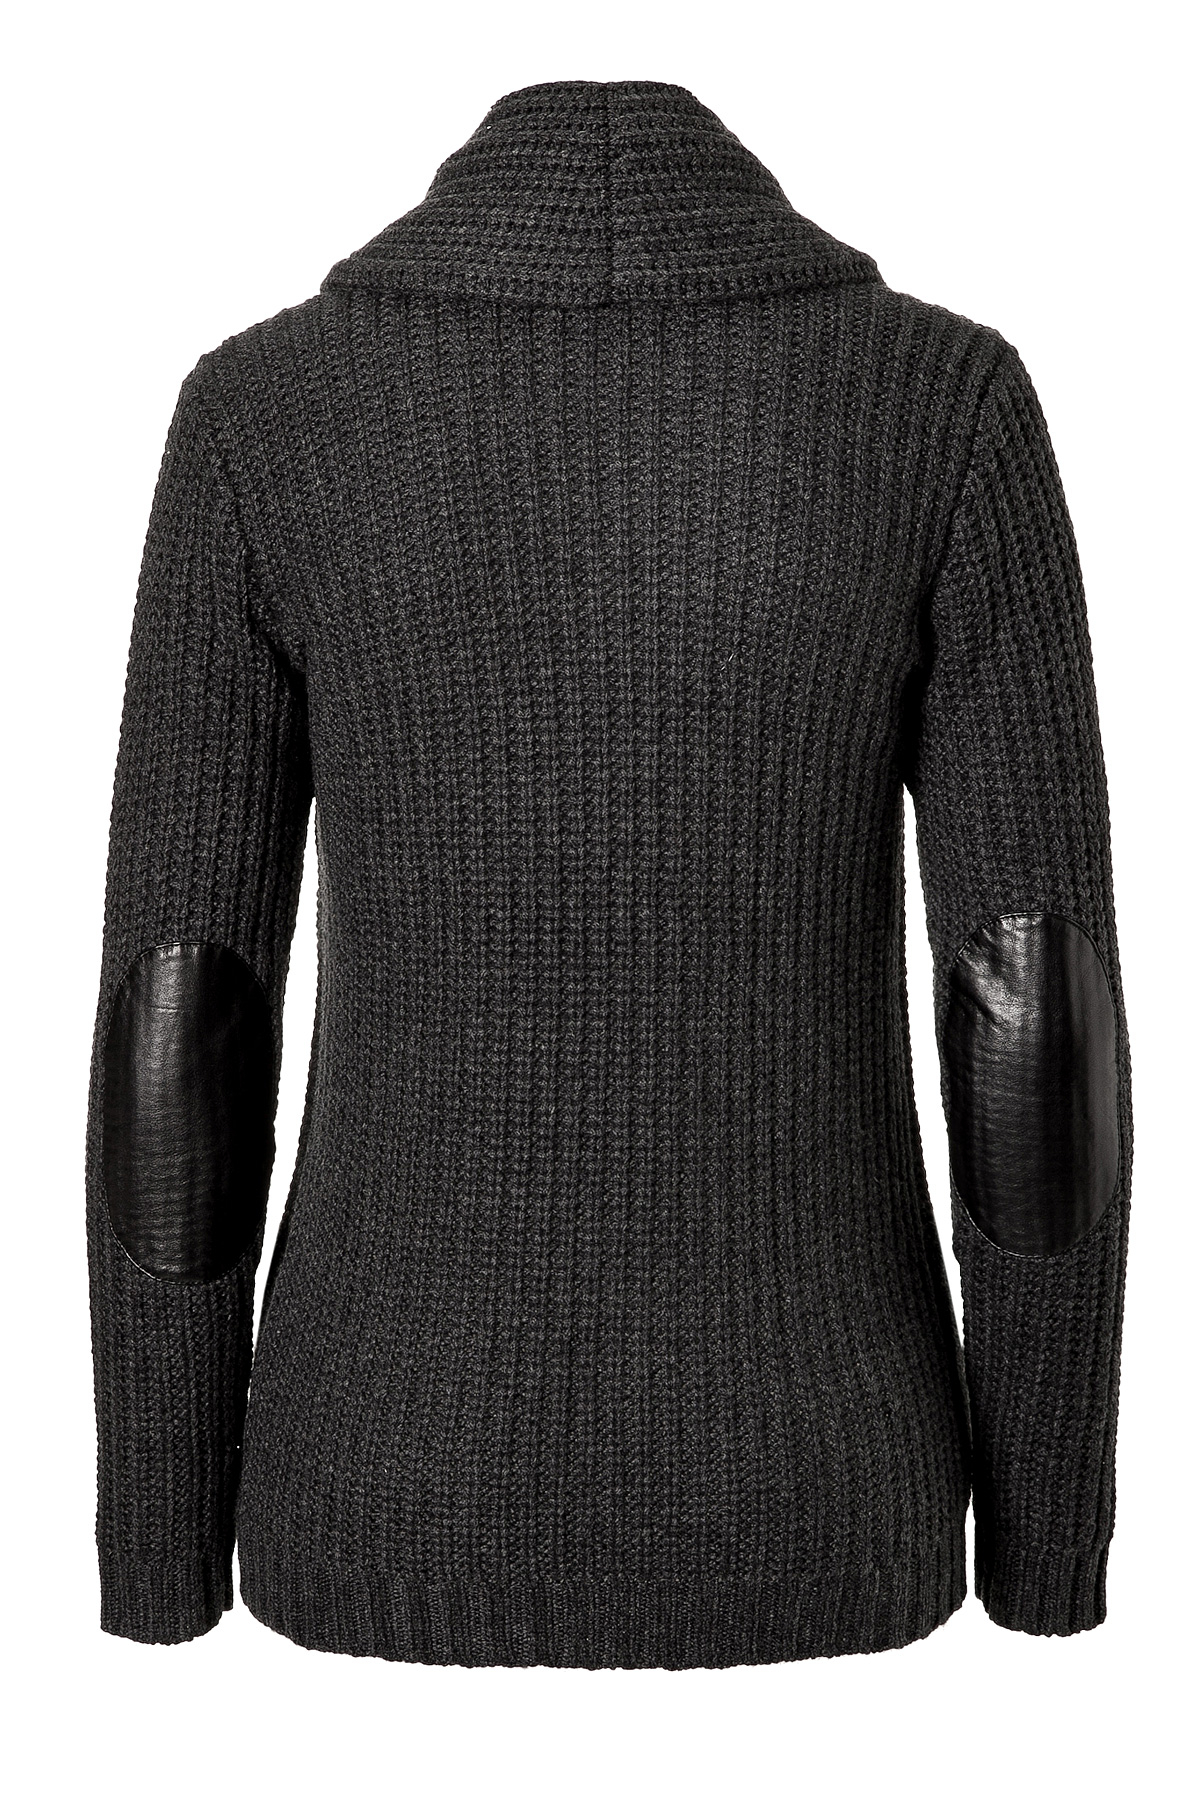 Ralph lauren black label Heavy Knit Cashmere Cardigan With Leather ...